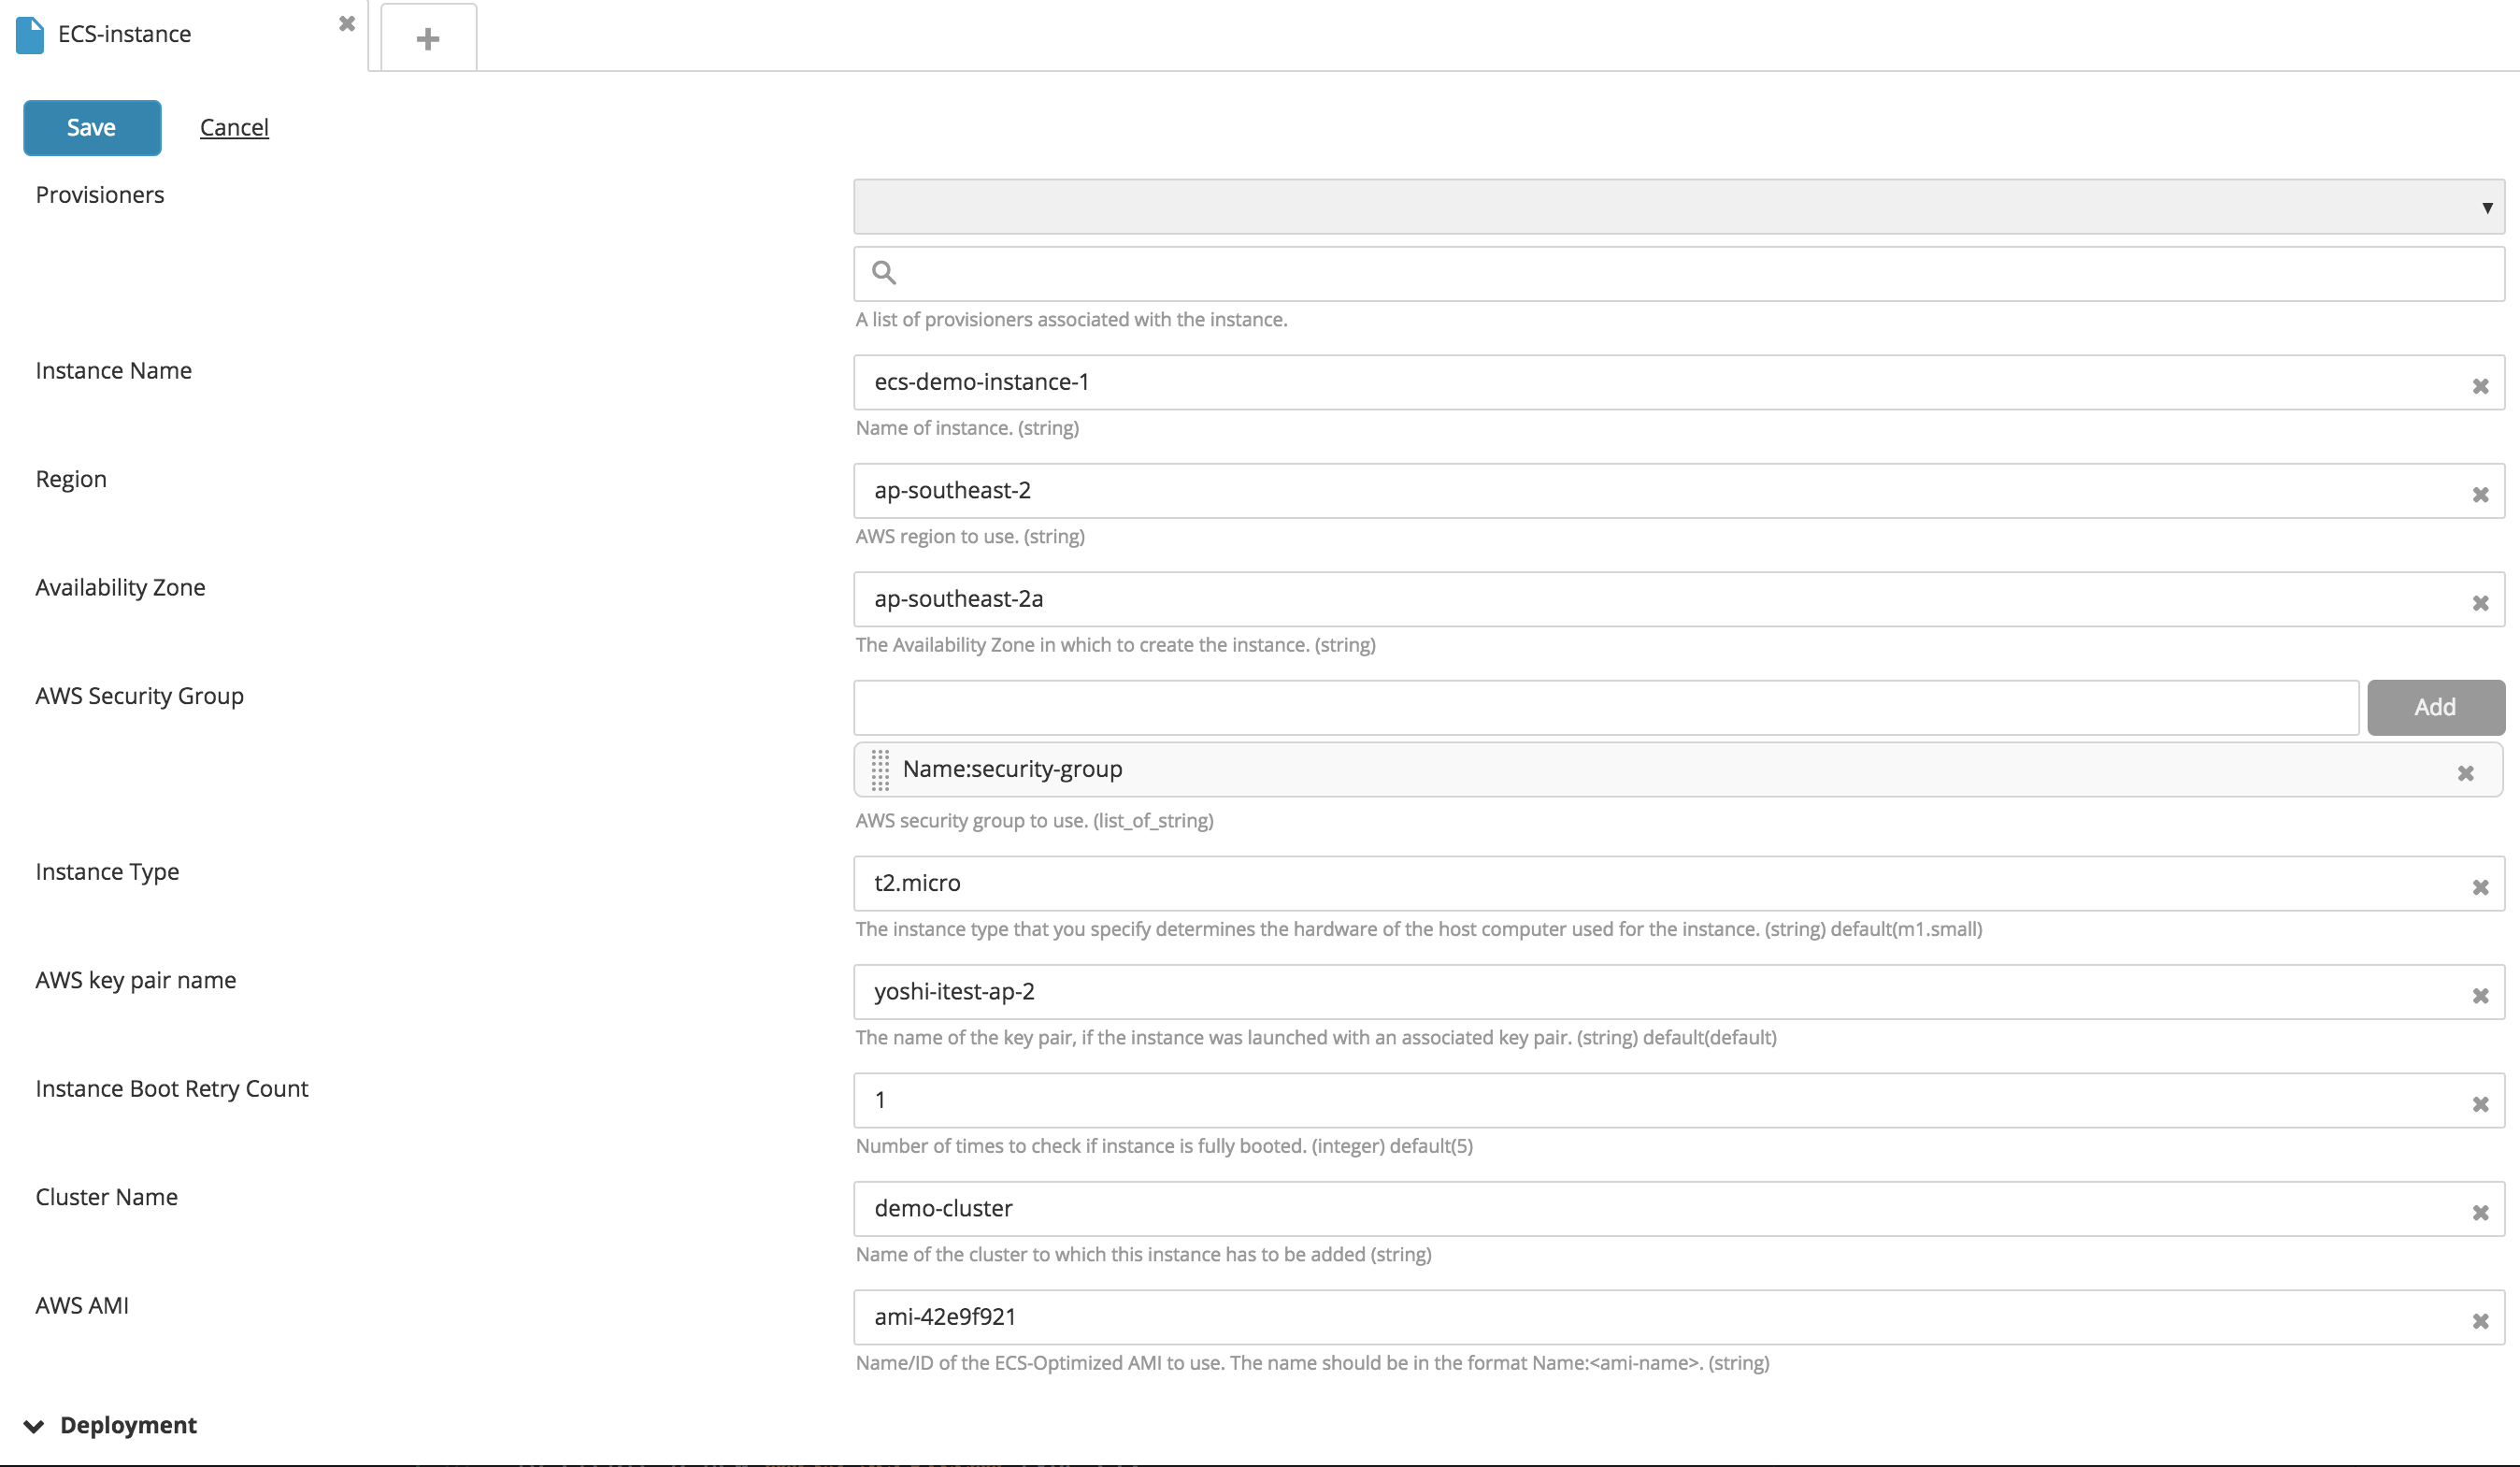 XebiaLabs documentation || Intelligence and Automation for